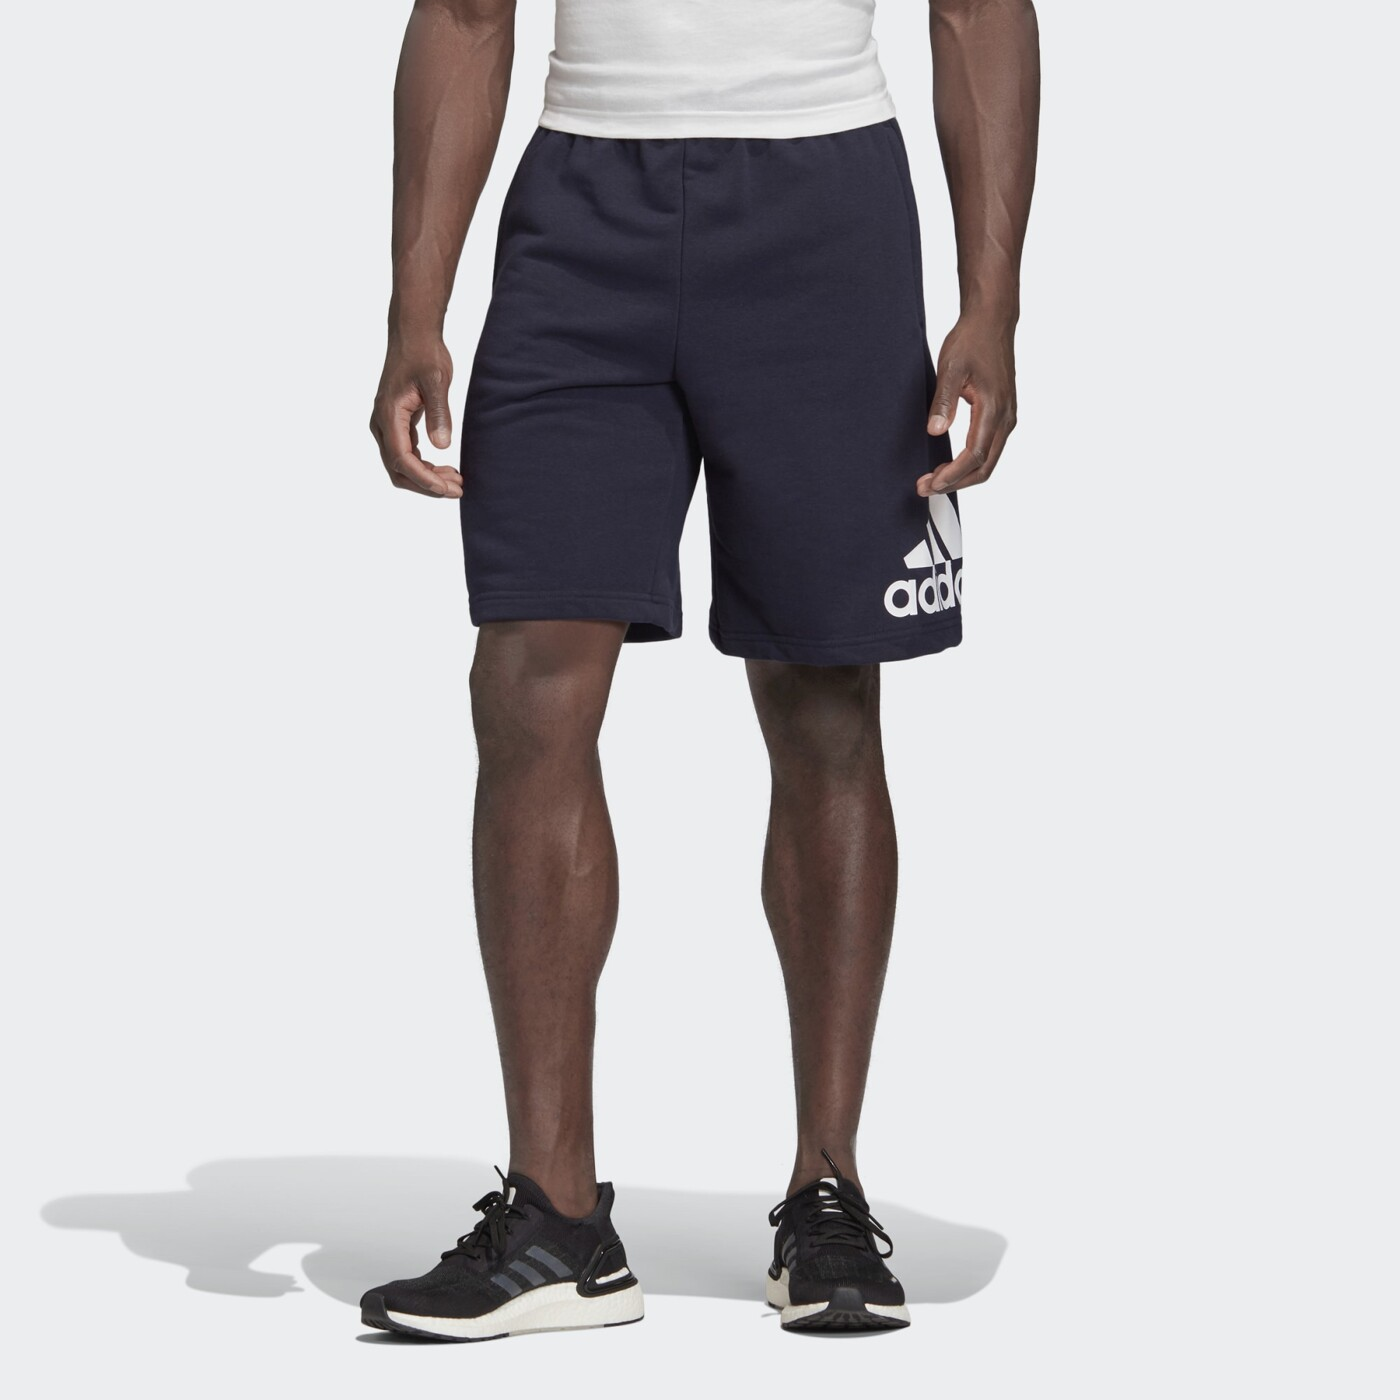 ADIDAS MUST HAVES BADGE OF SPORT SHORTS - Herren